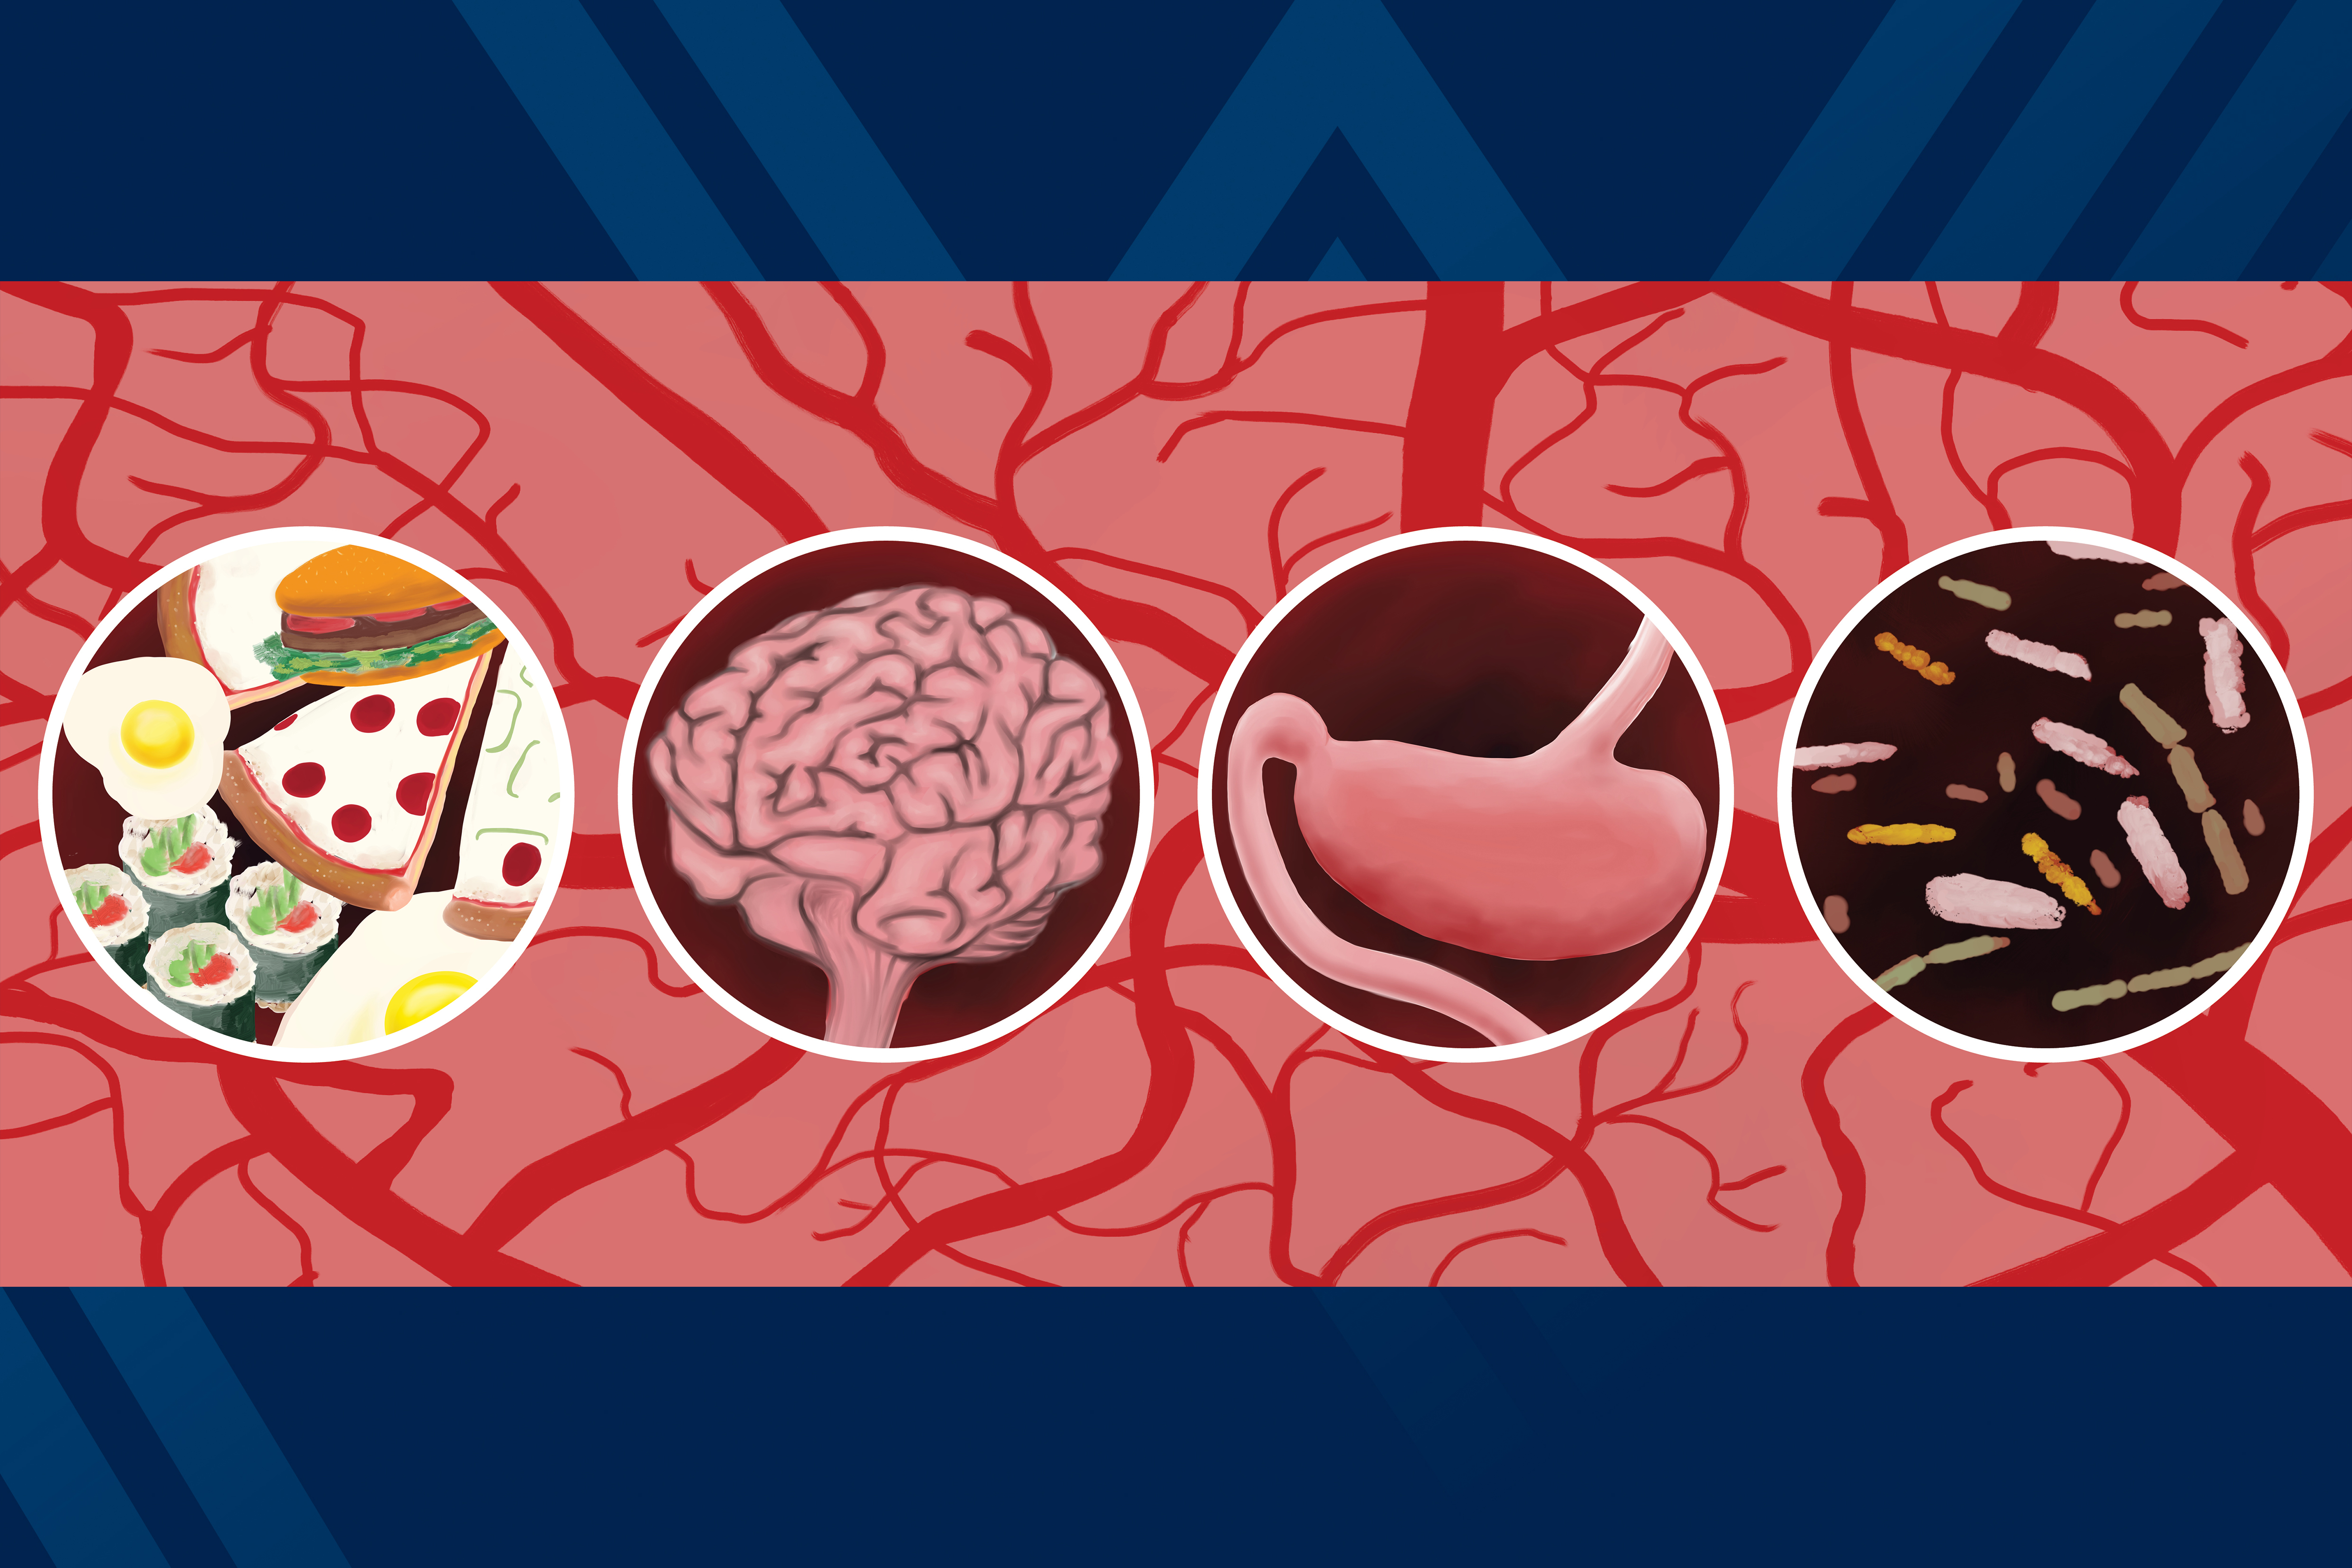 graphic of food, a brain, a stomach and microbiomes